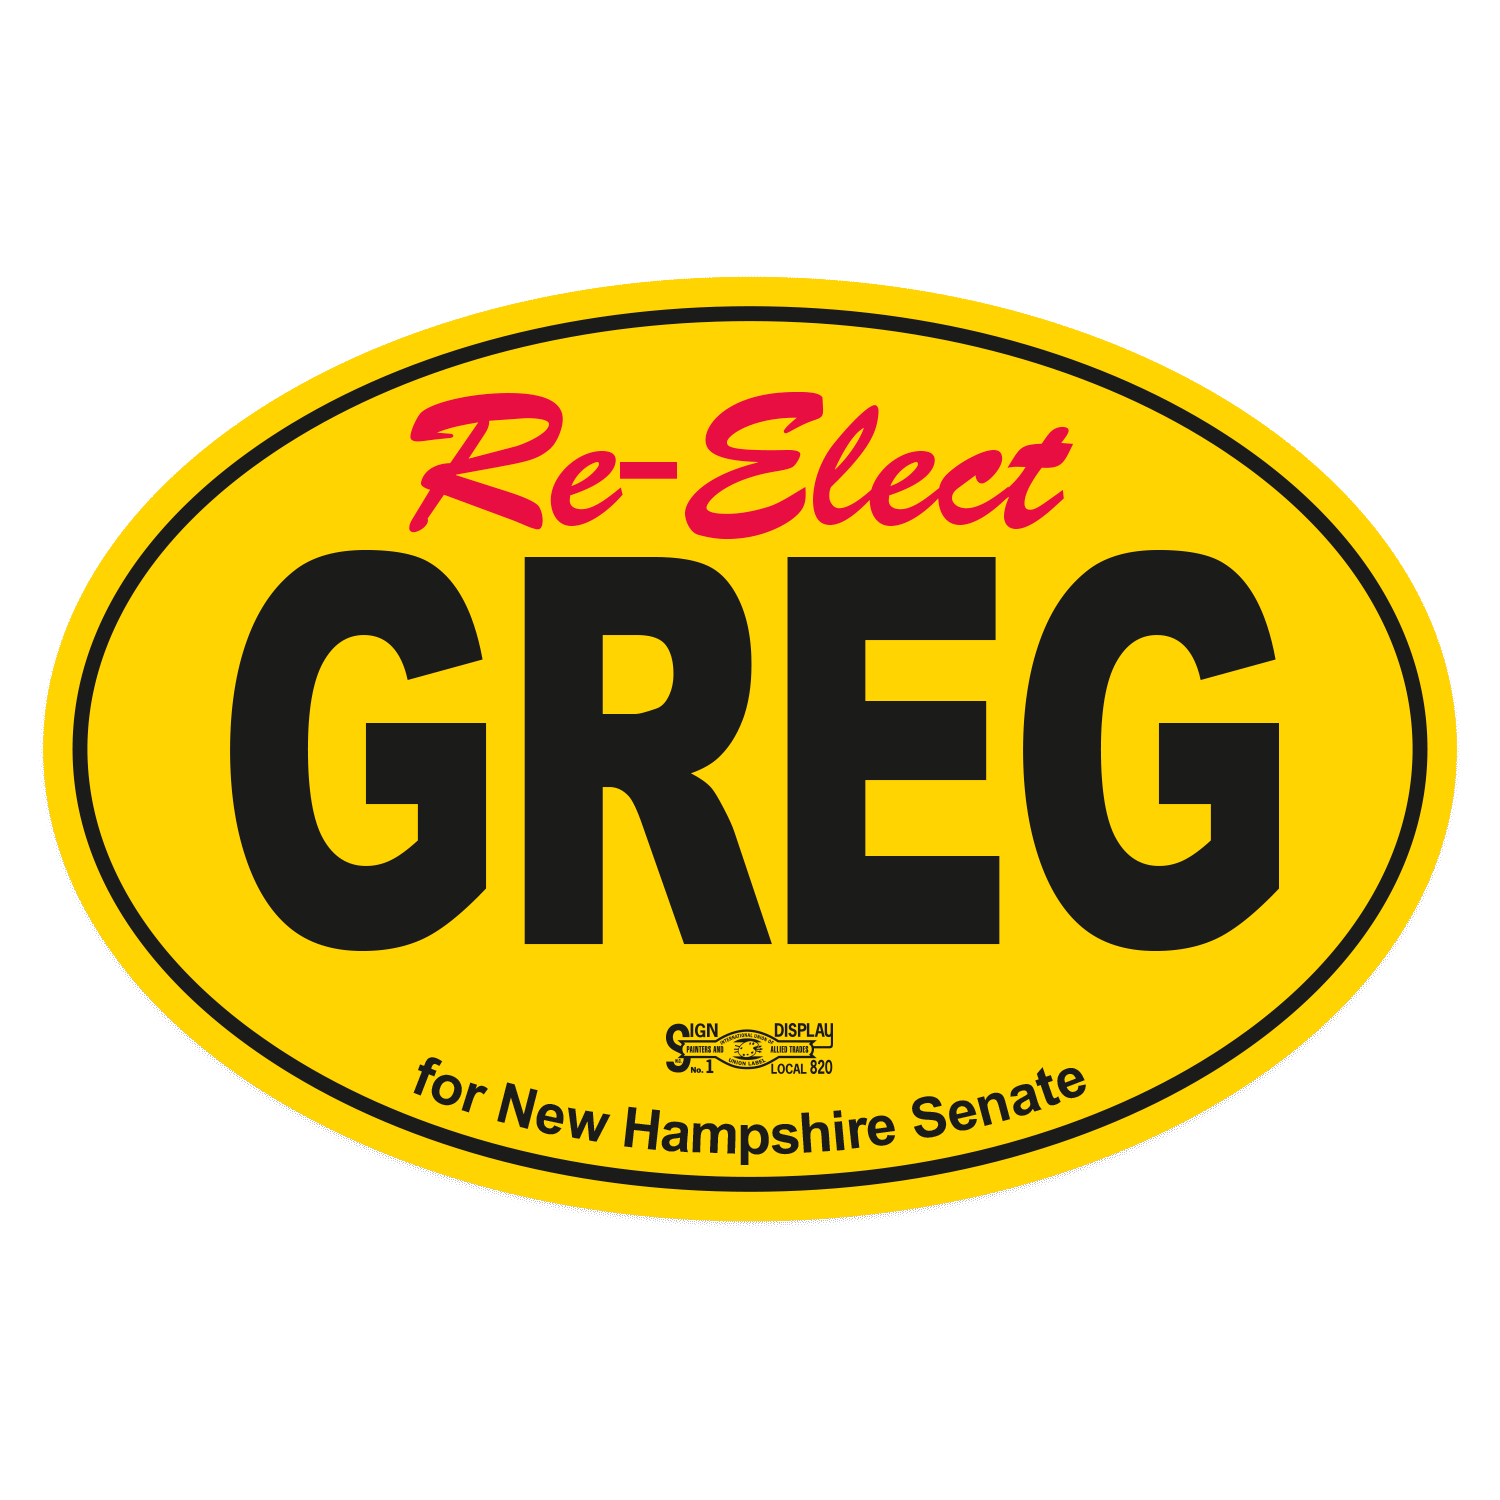 https://www.sswprinting.com/images/products_gallery_images/40804_Greg-for-Senate_hi-res.png